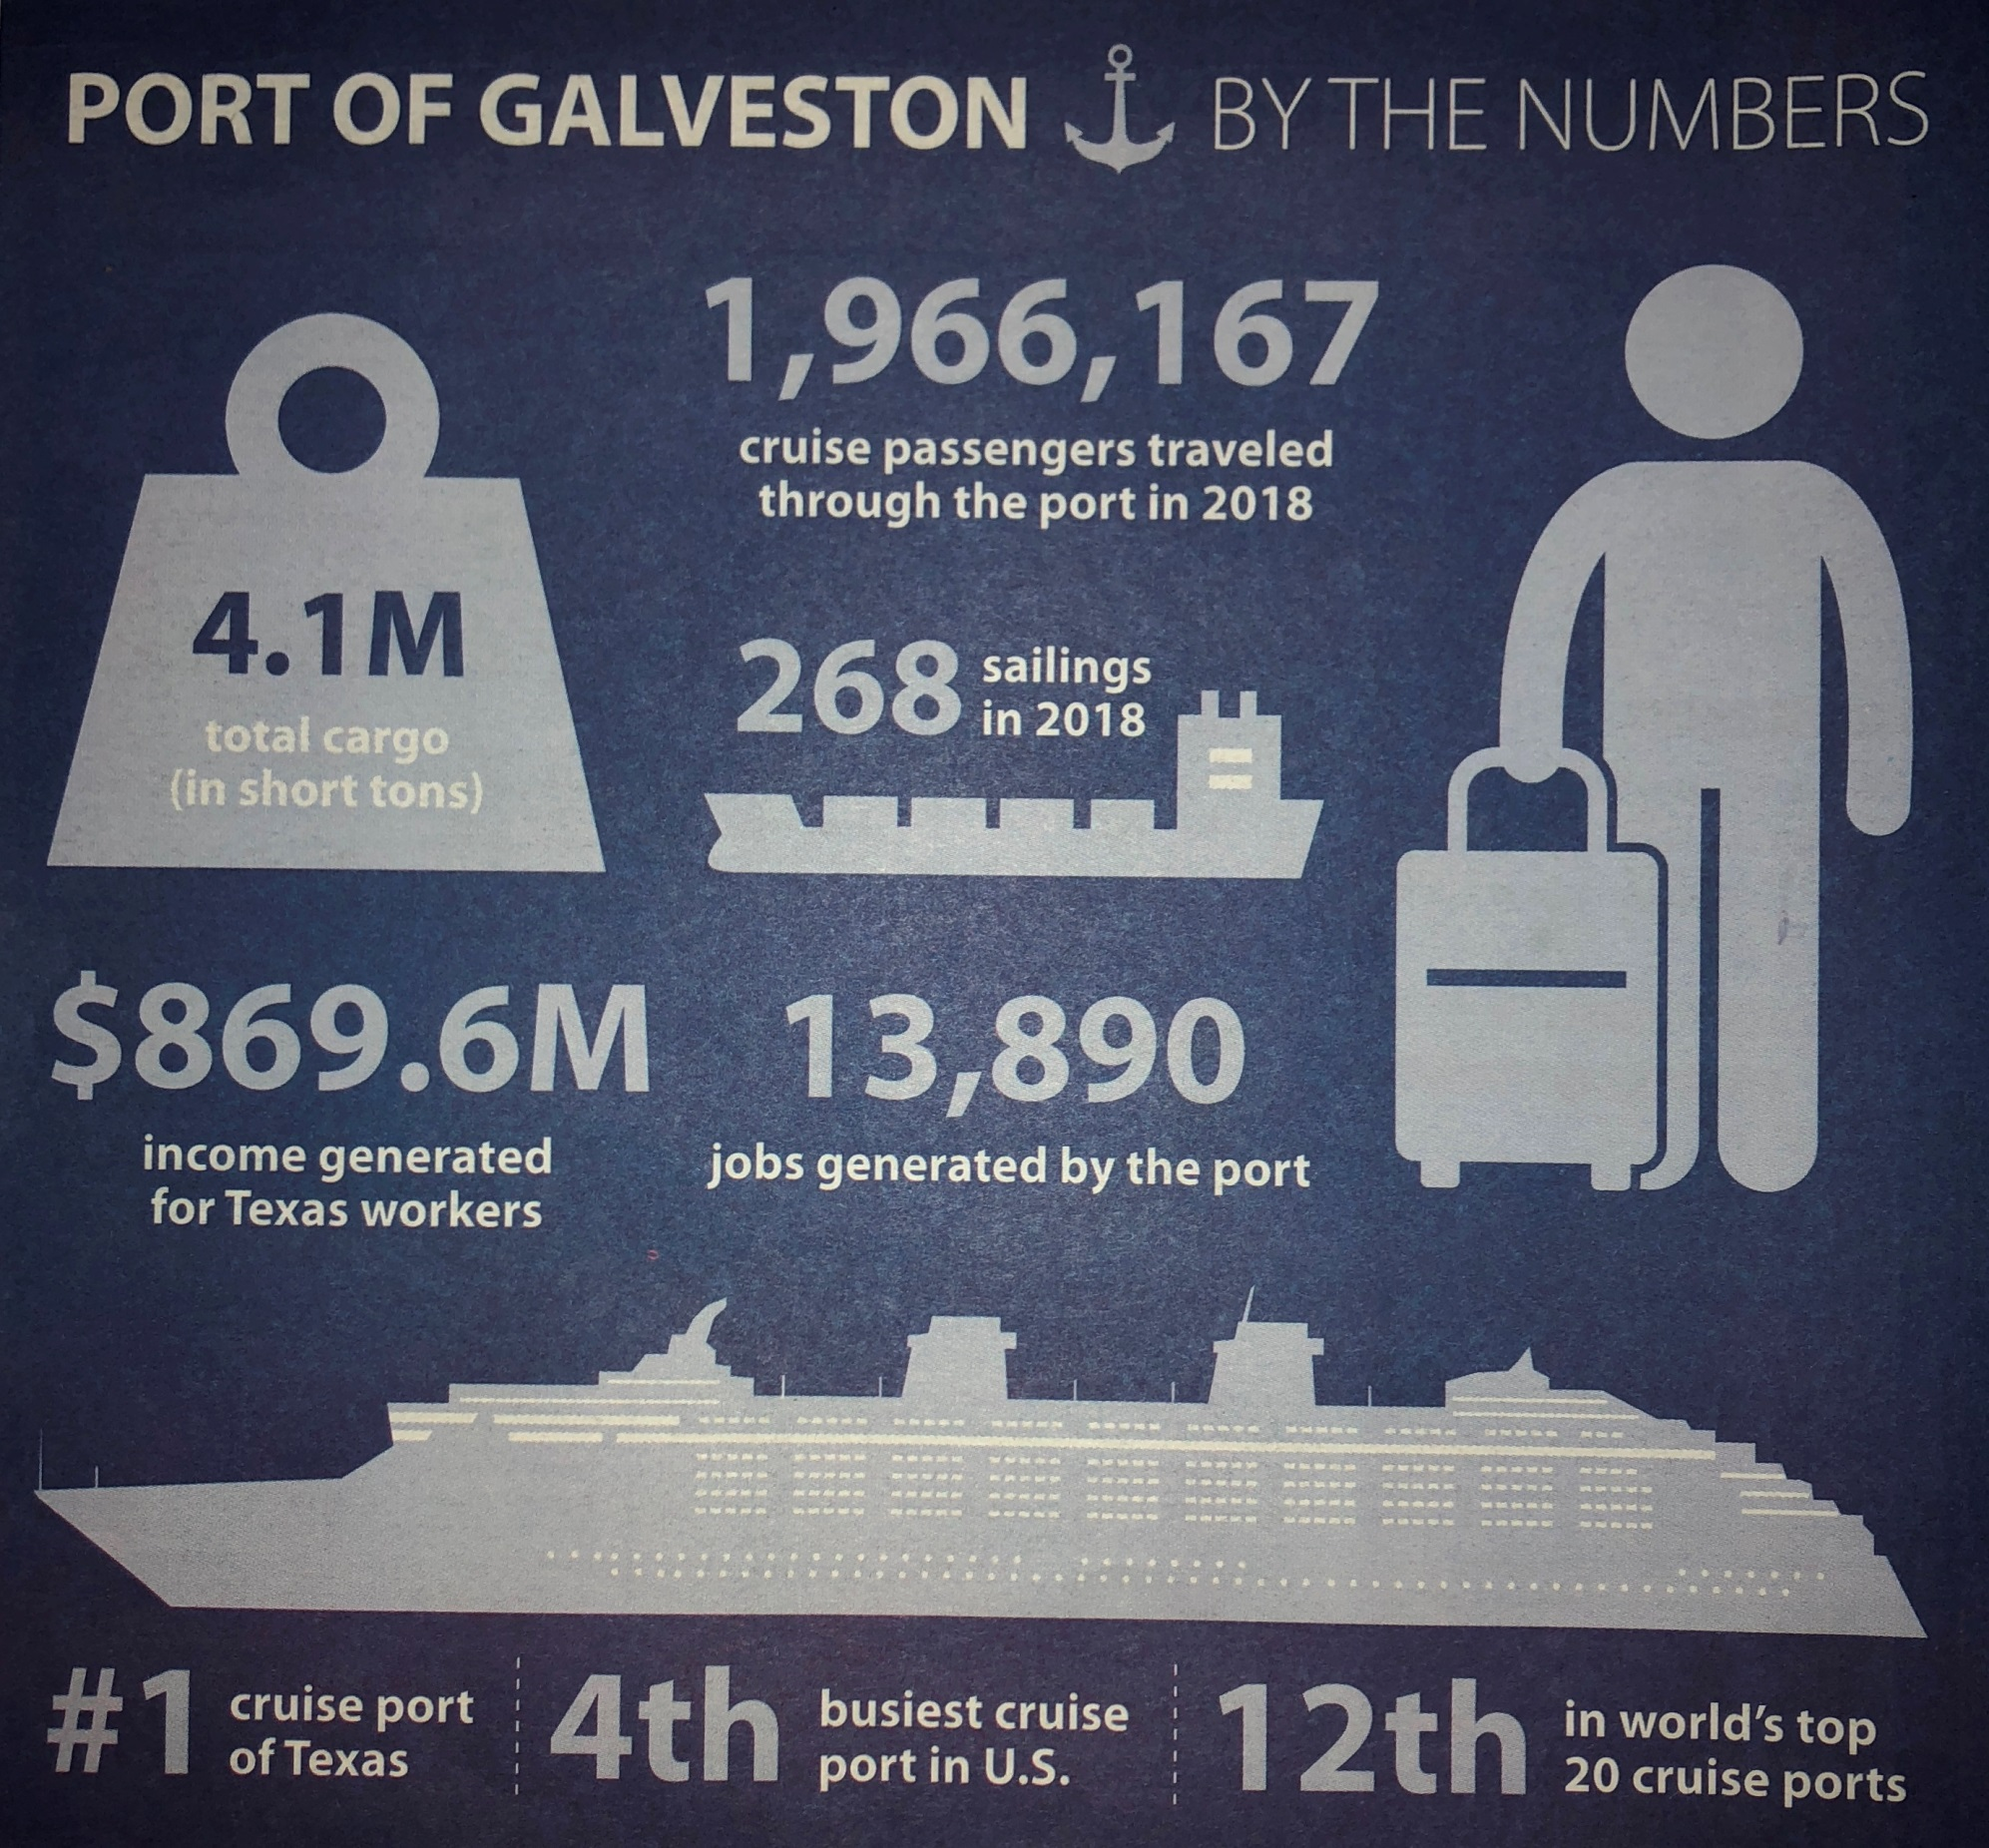 Port of Galveston 2018 year in review